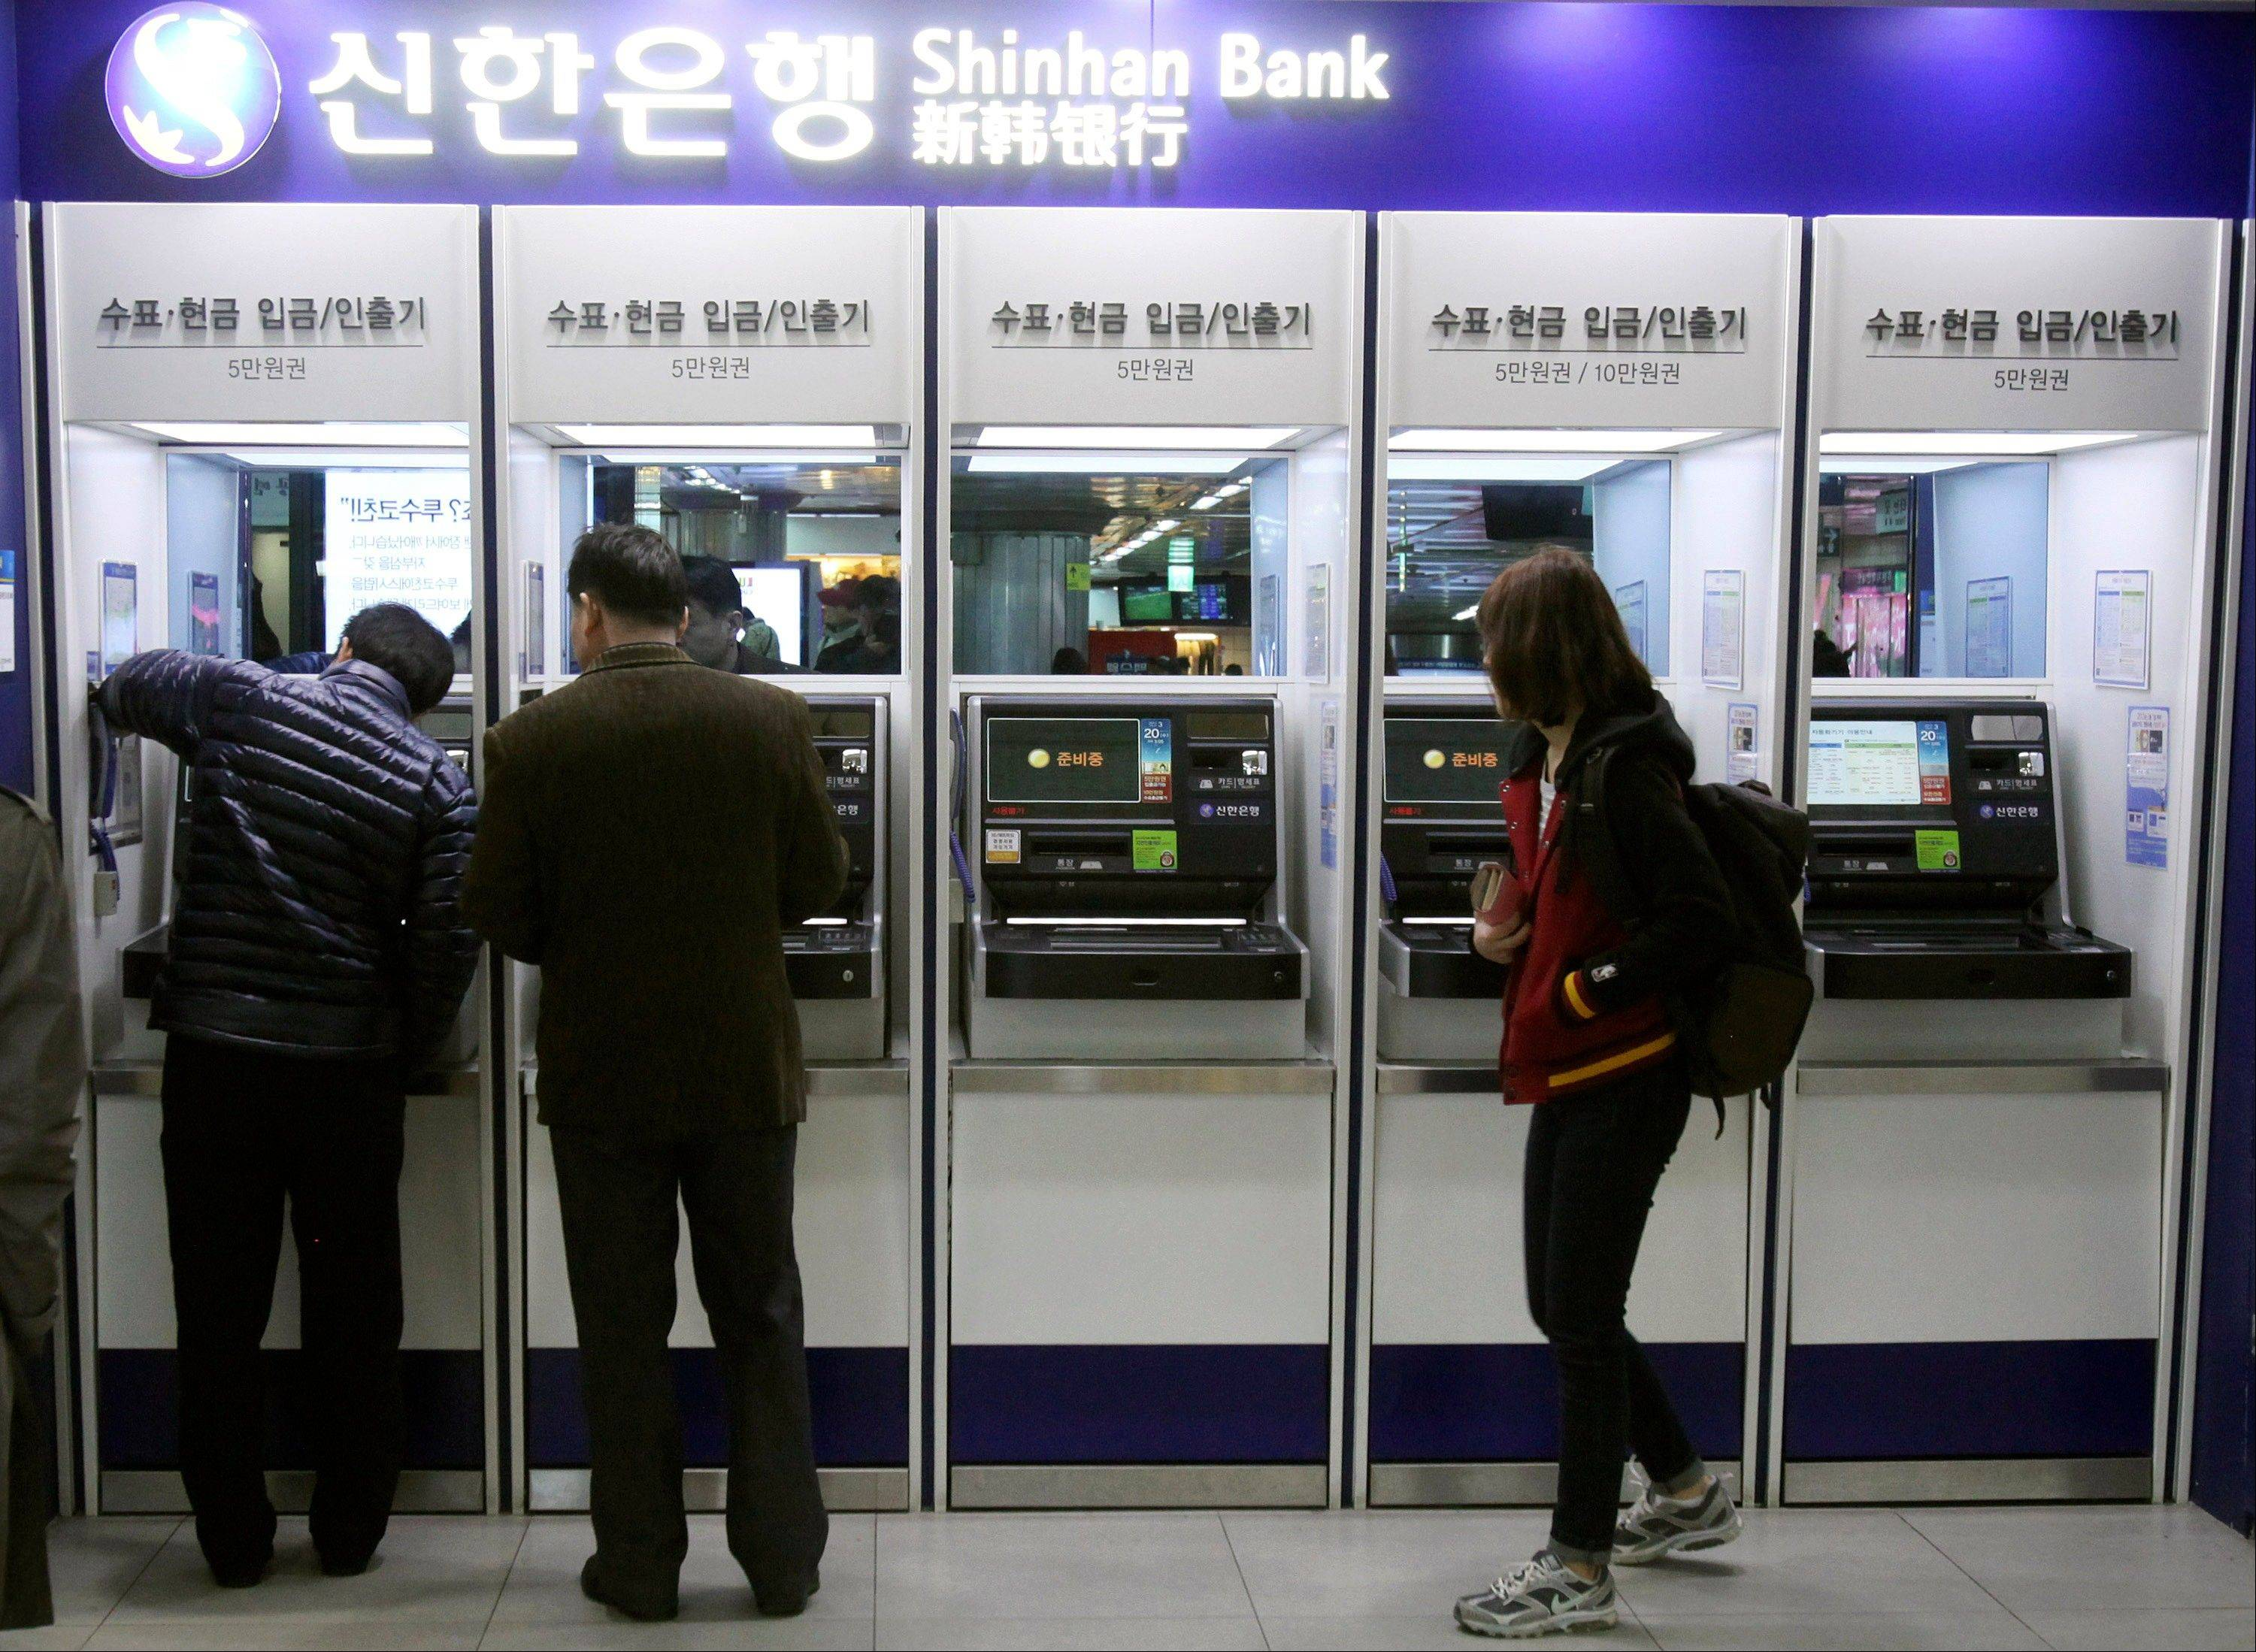 Depositors try to use automated teller machines while the bank�s computer networks are paralyzed at a subway station in Seoul, South Korea, Wednesday. Computer networks at two major South Korean banks and three top TV broadcasters went into shutdown mode en masse Wednesday.